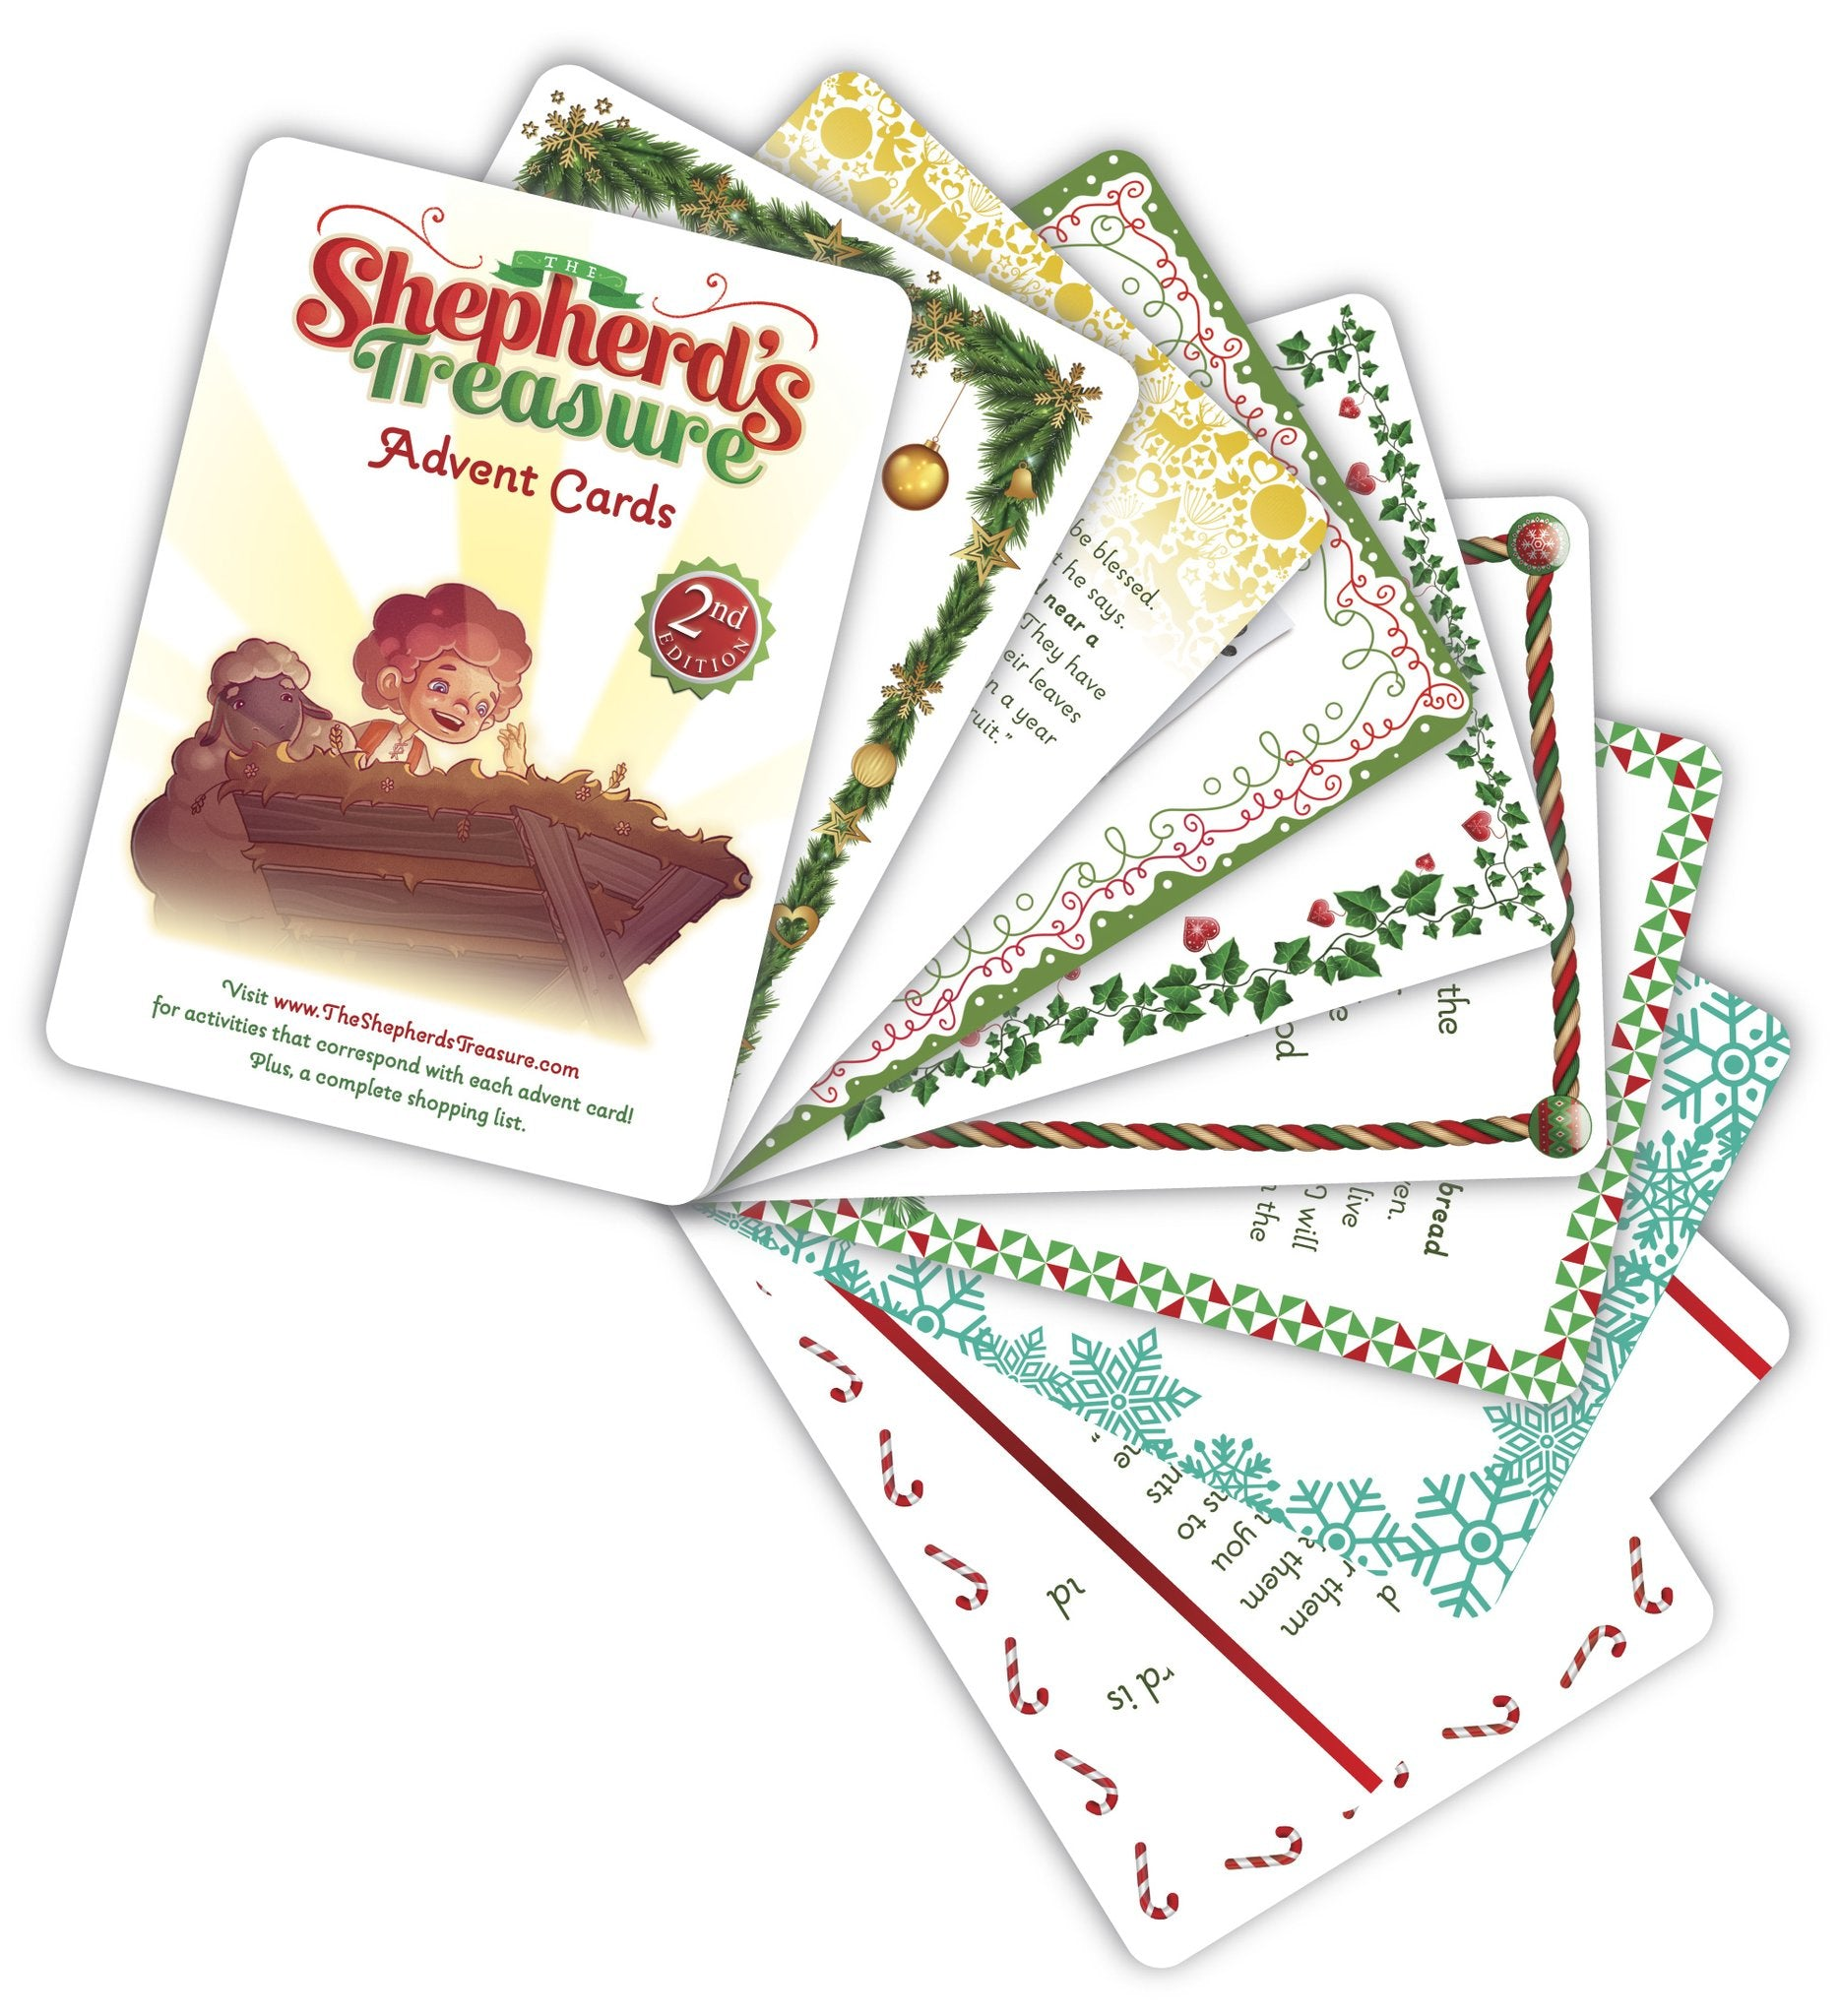 The Shepherd's Treasure Advent Cards (Second Edition)